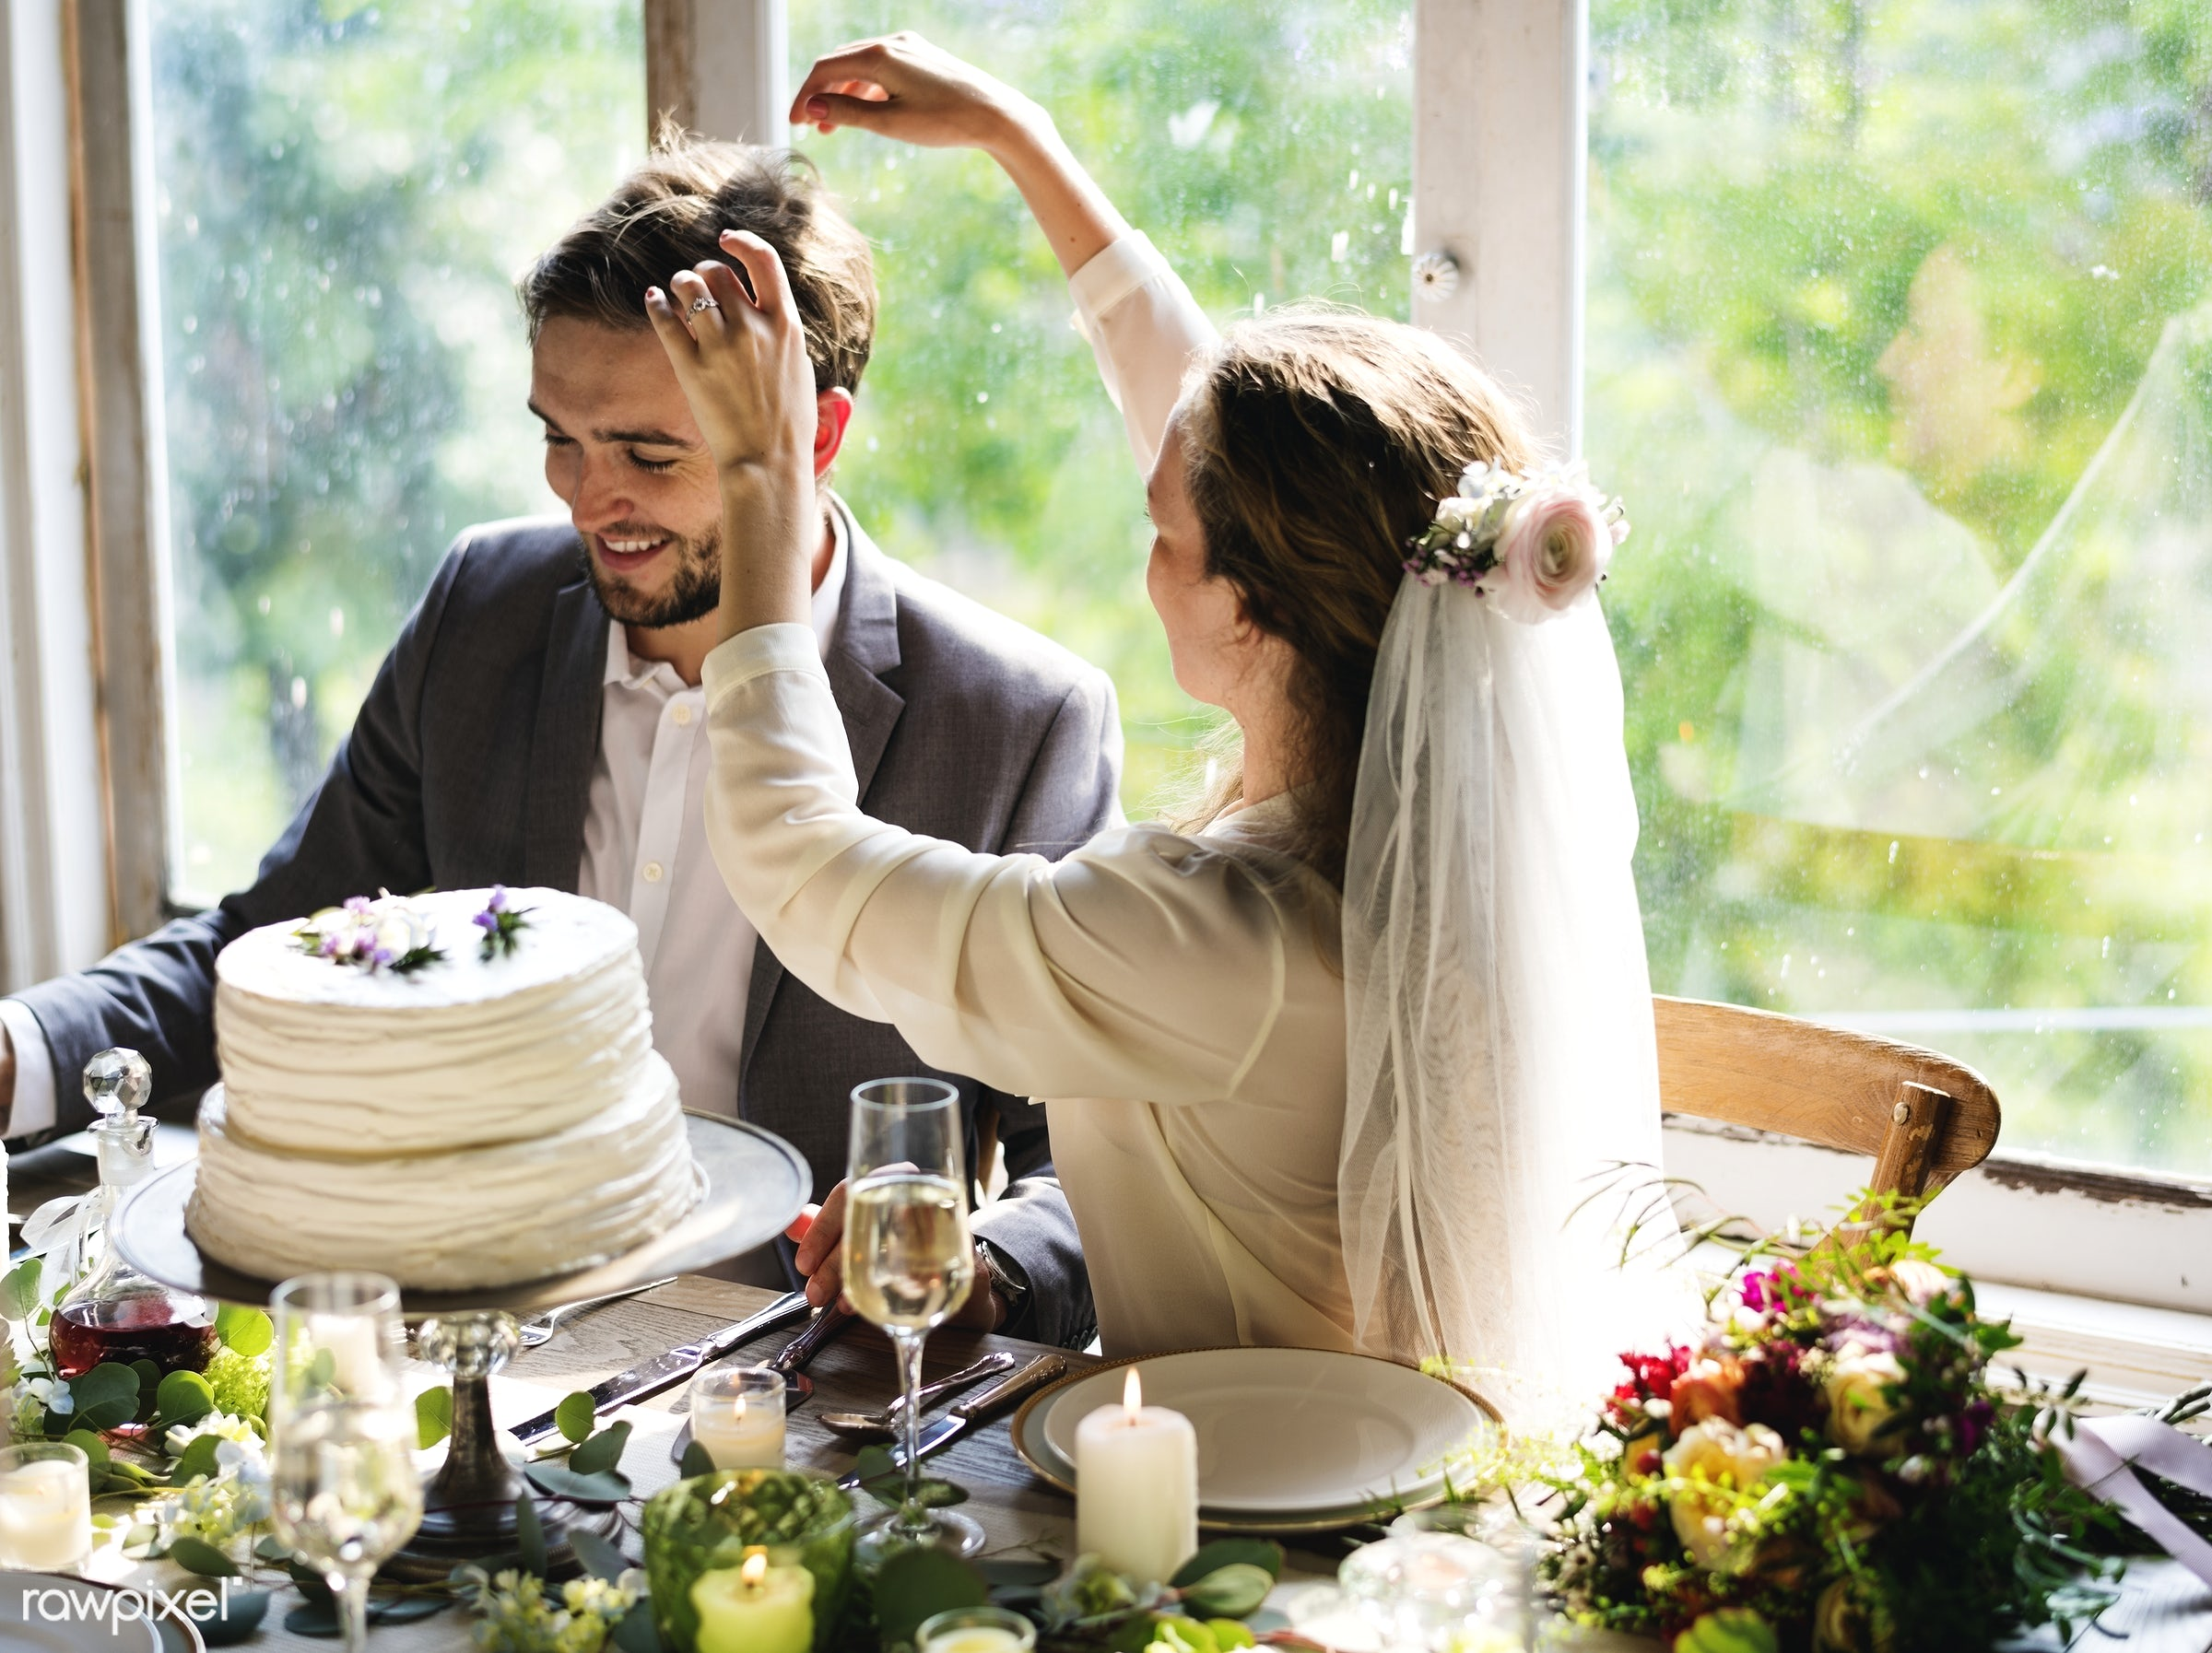 Bride playing with groom's hair at reception table - alcohol, bride, celebration, champagne, couple, drinking, event, groom...